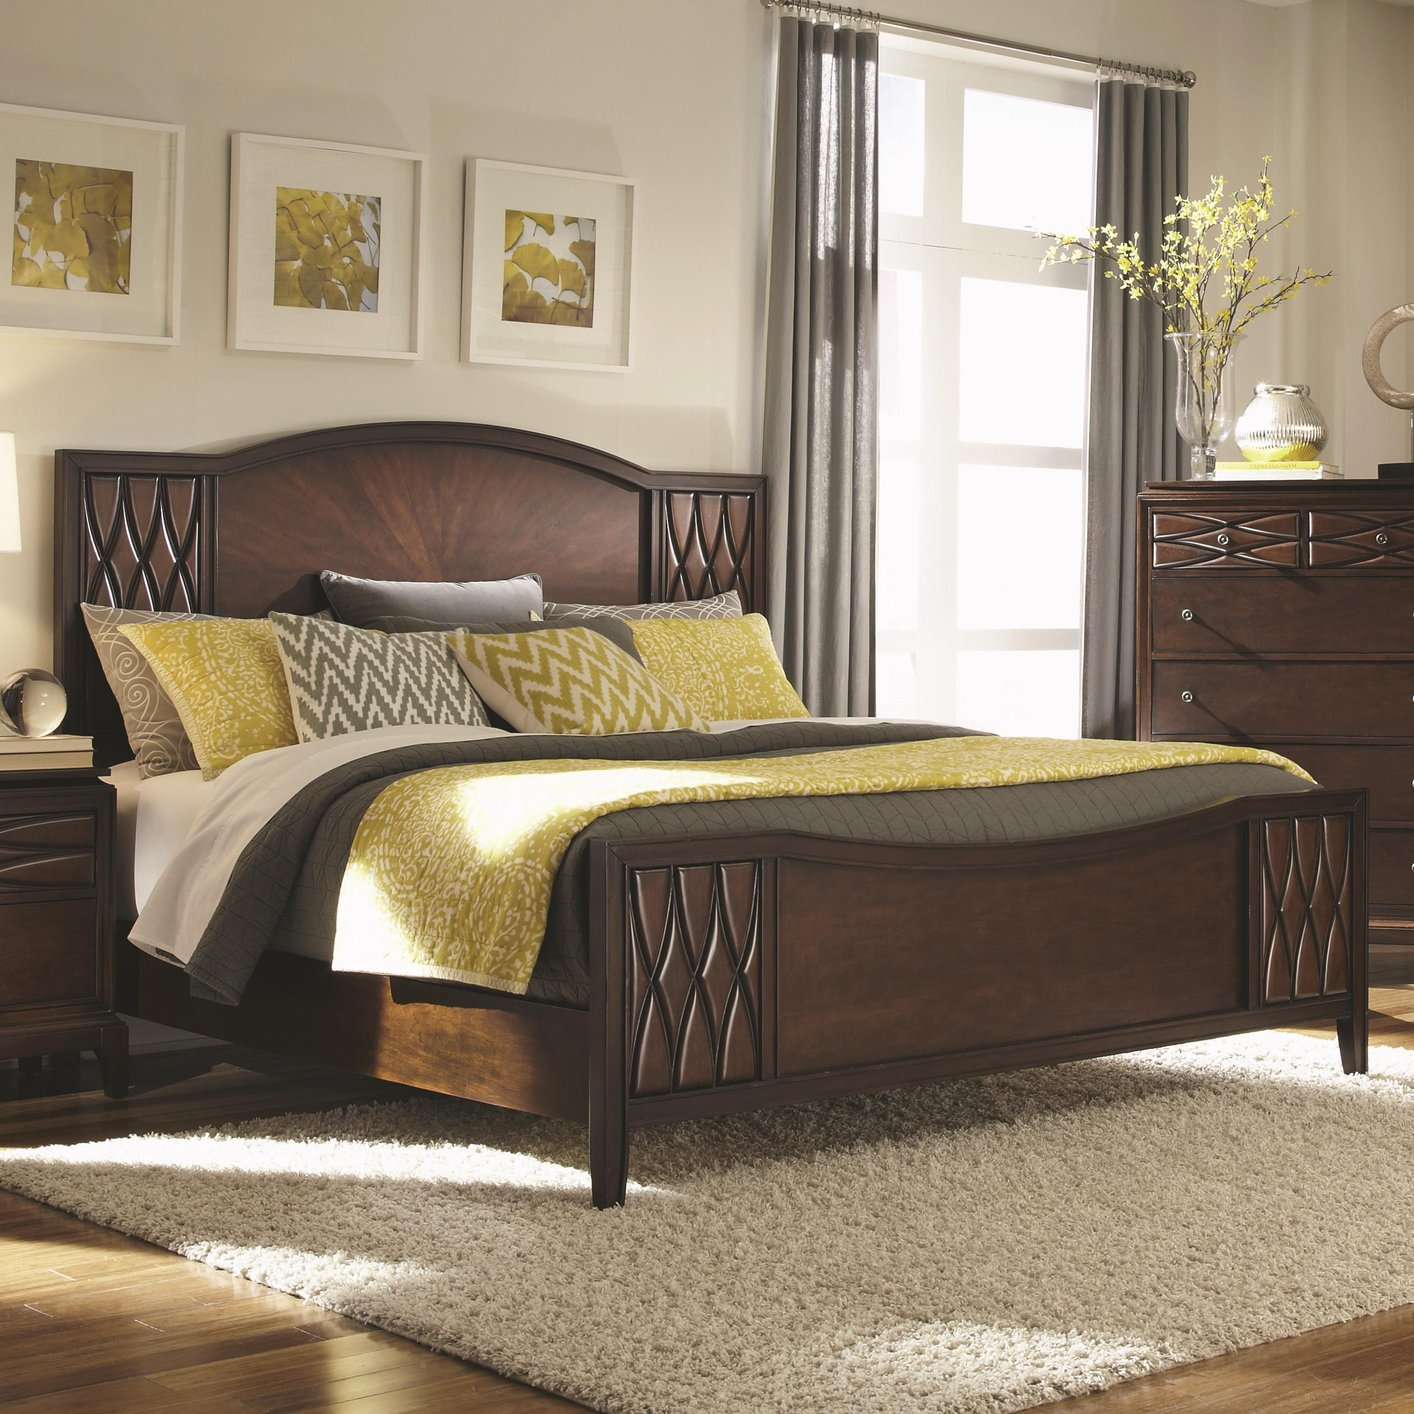 brown wood bed - King Size Wood Bed Frame